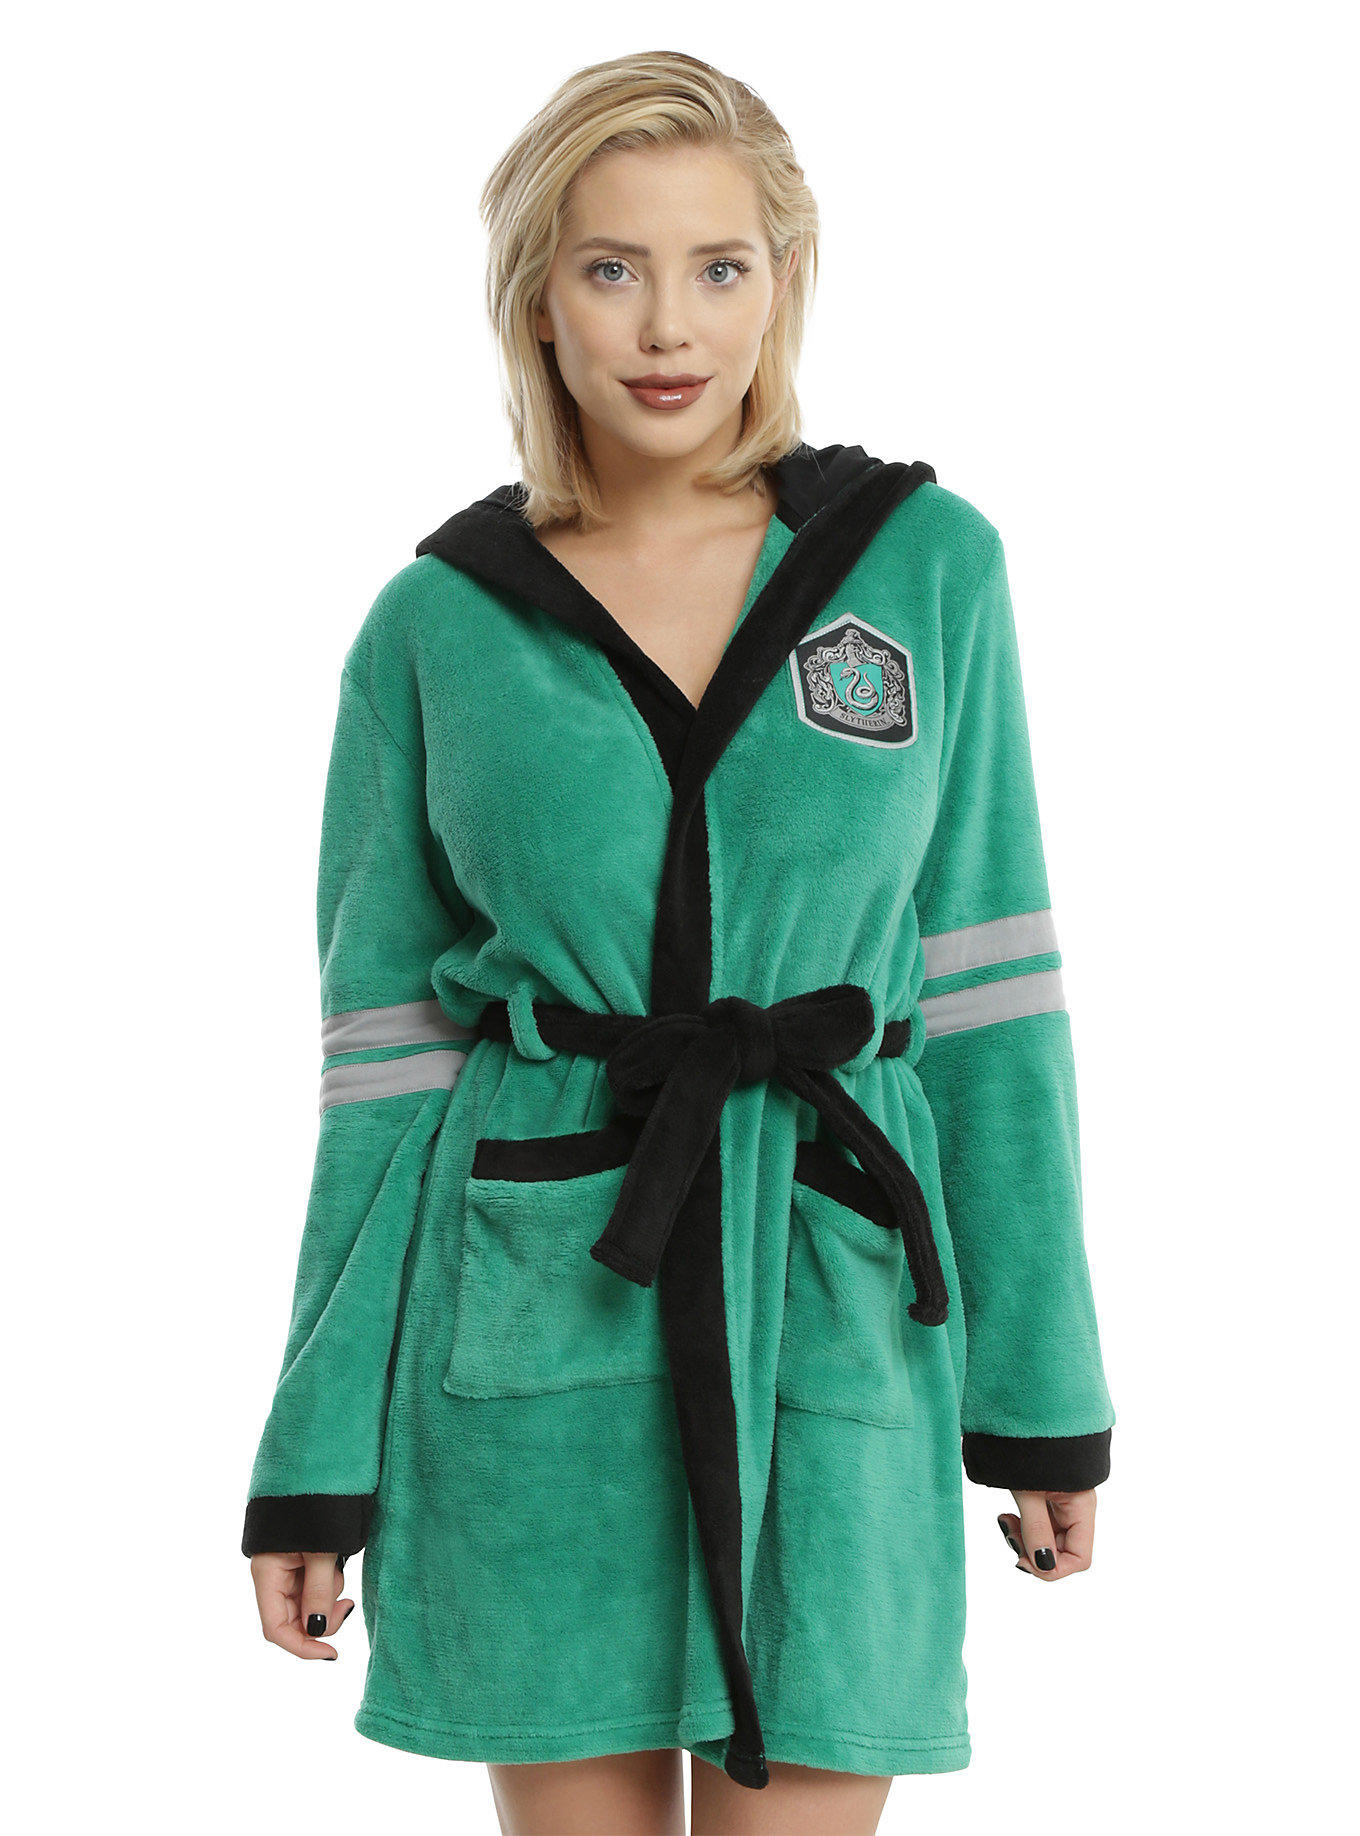 Harry Potter Slytherin Robe From Hot Topic Epic Wishlist